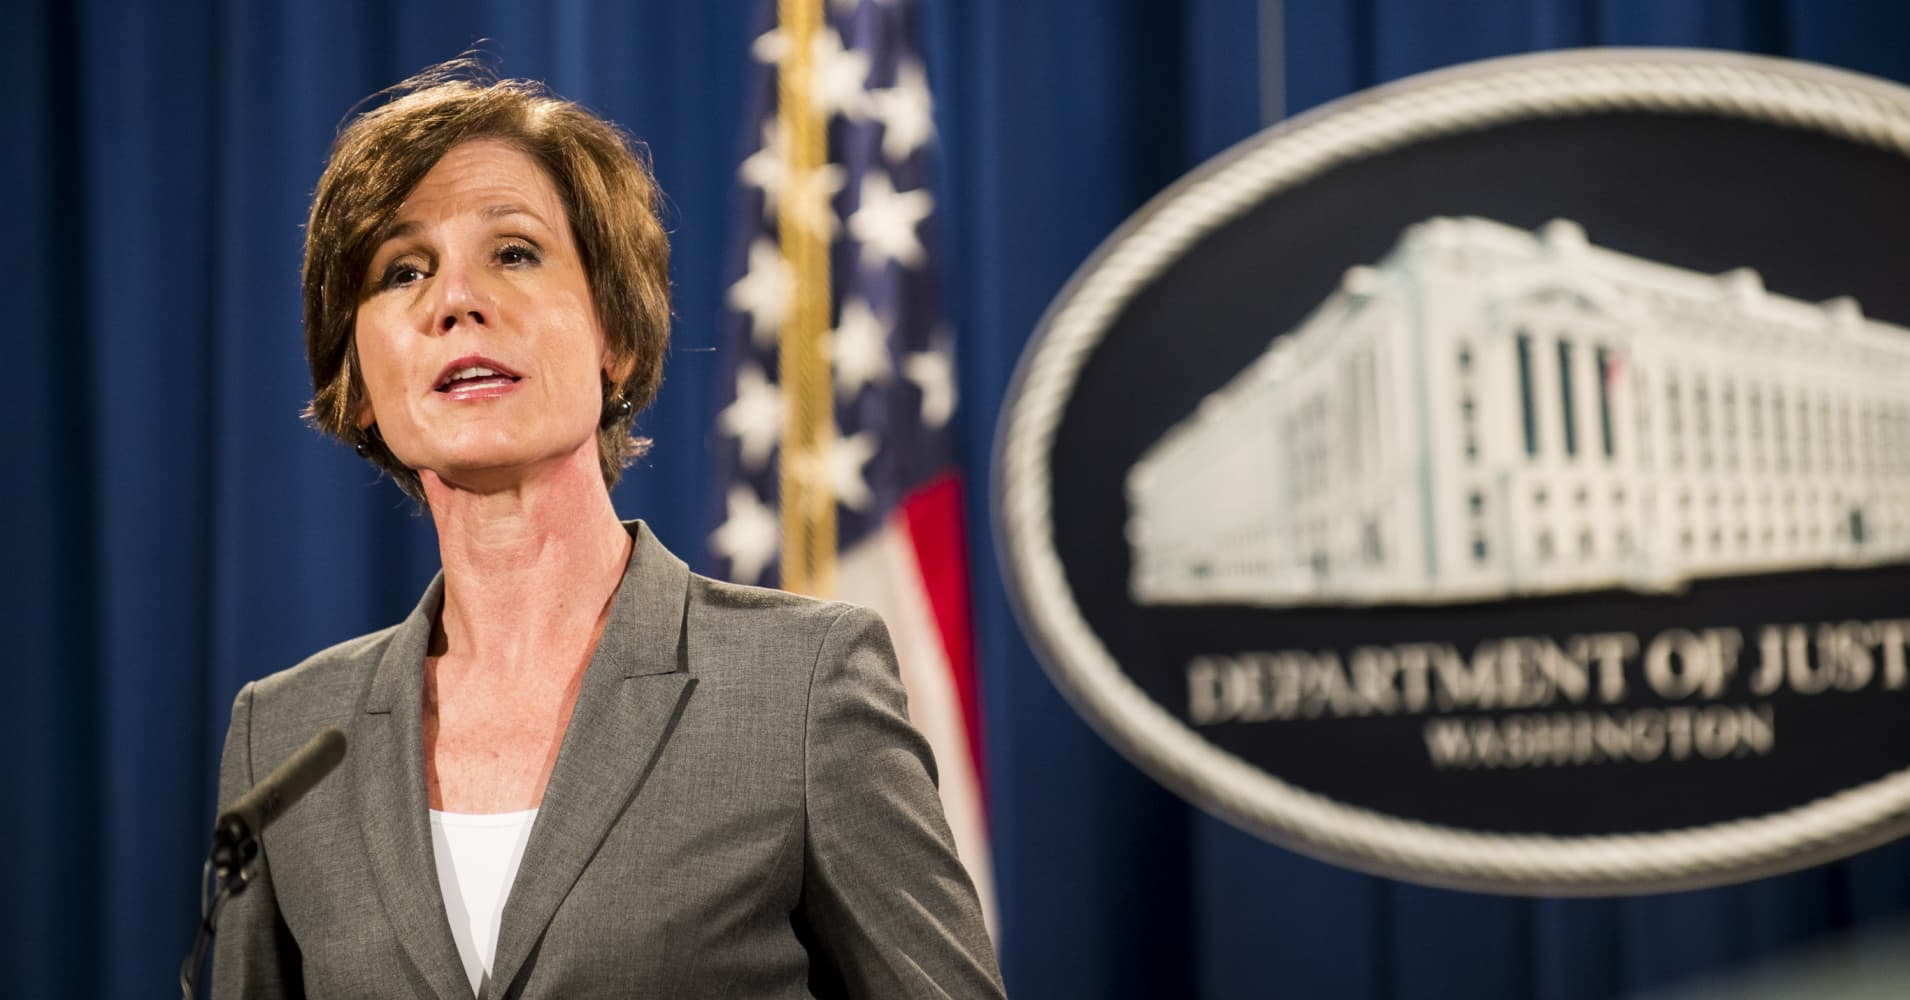 Trump is going after Sally Yates before she starts her testimony on Flynn and the Russians